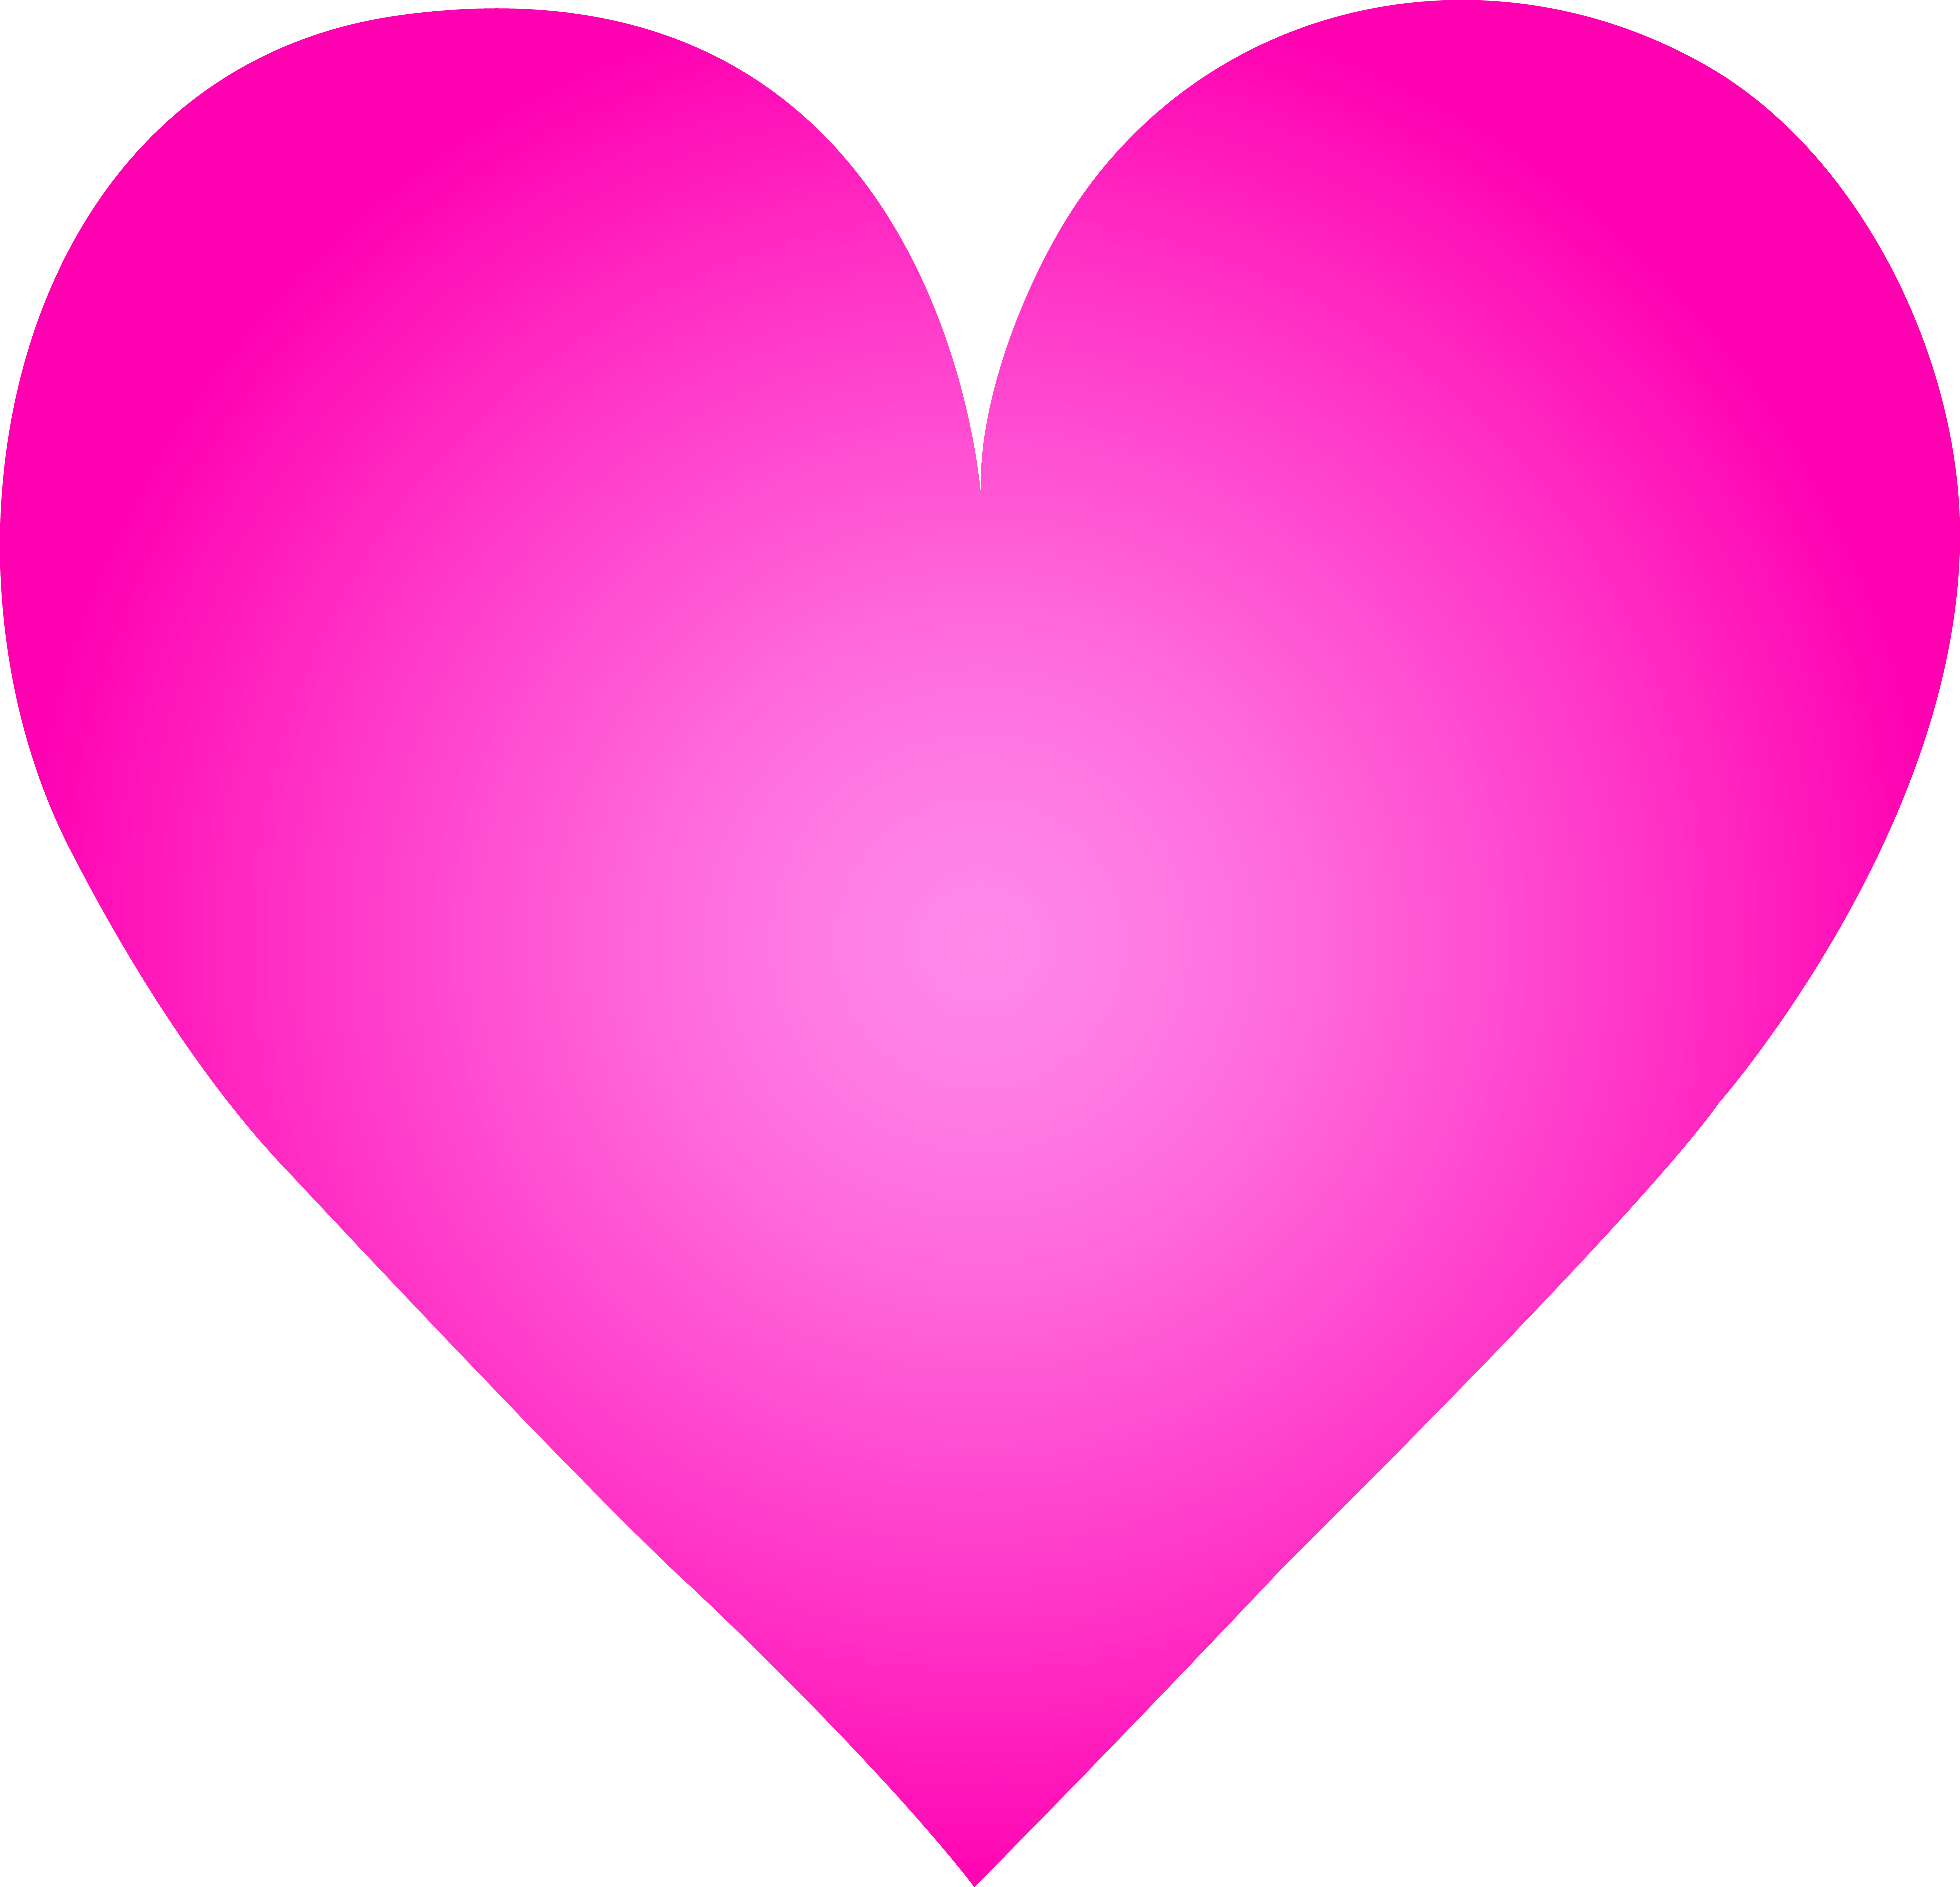 Brush heart clipart picture free download Free Pink Heart Image, Download Free Clip Art, Free Clip Art on ... picture free download